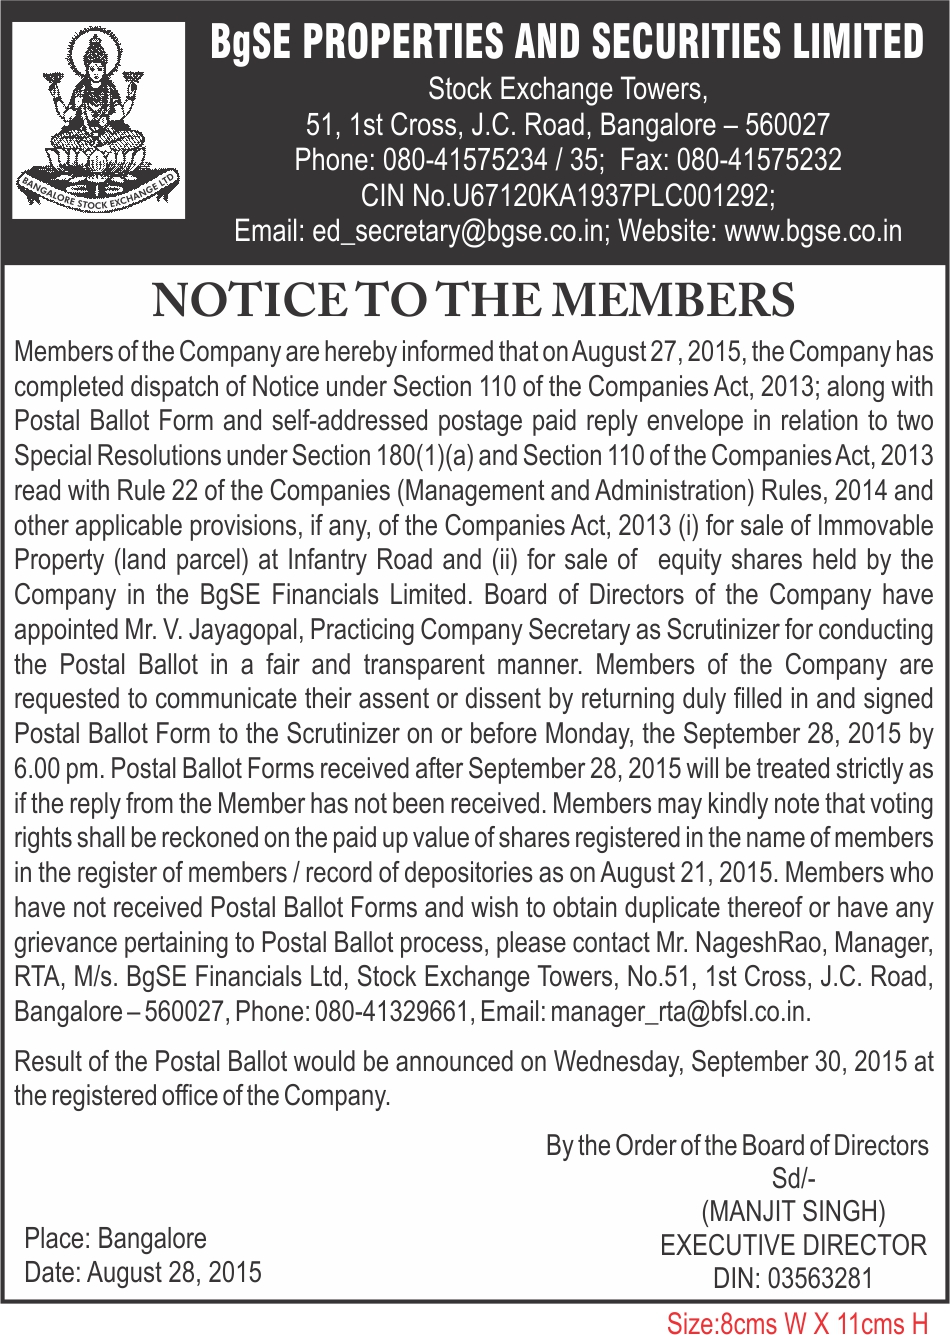 Despatch of Postal Ballot Notice to Shareholders